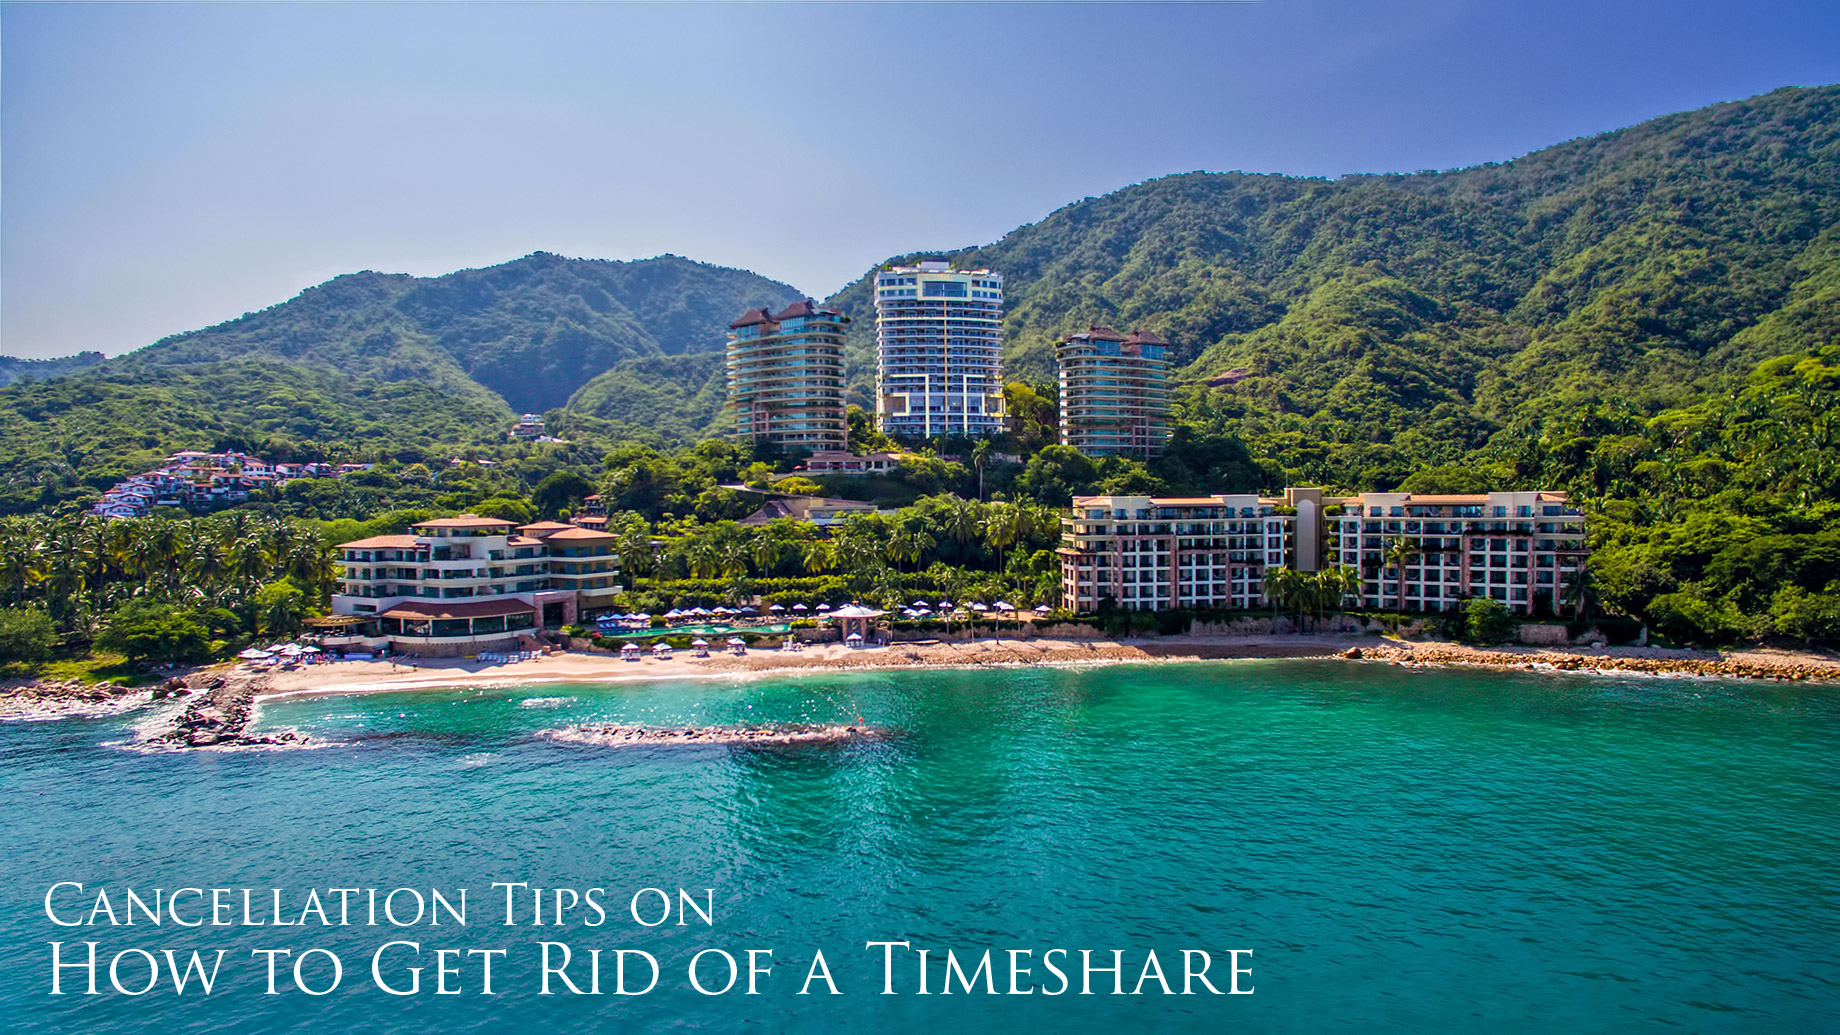 Cancellation Tips on How to Get Rid of a Timeshare